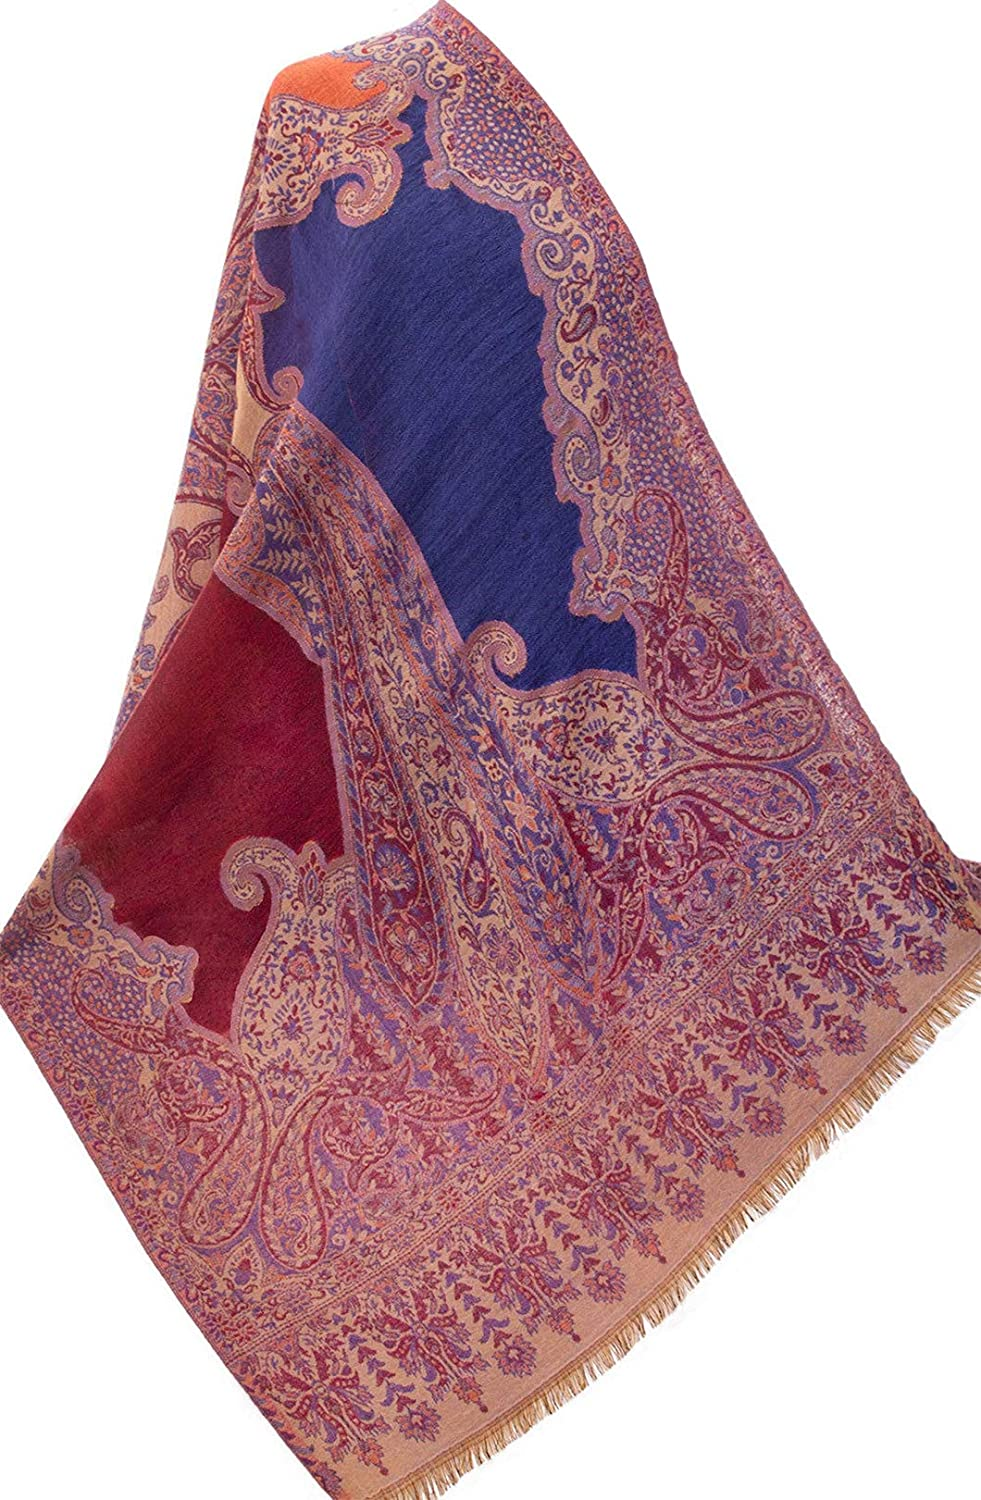 Purple Jamawar Paisely Pashmina Stole Wool Jamawar India 80x28  Kashmir Shawl